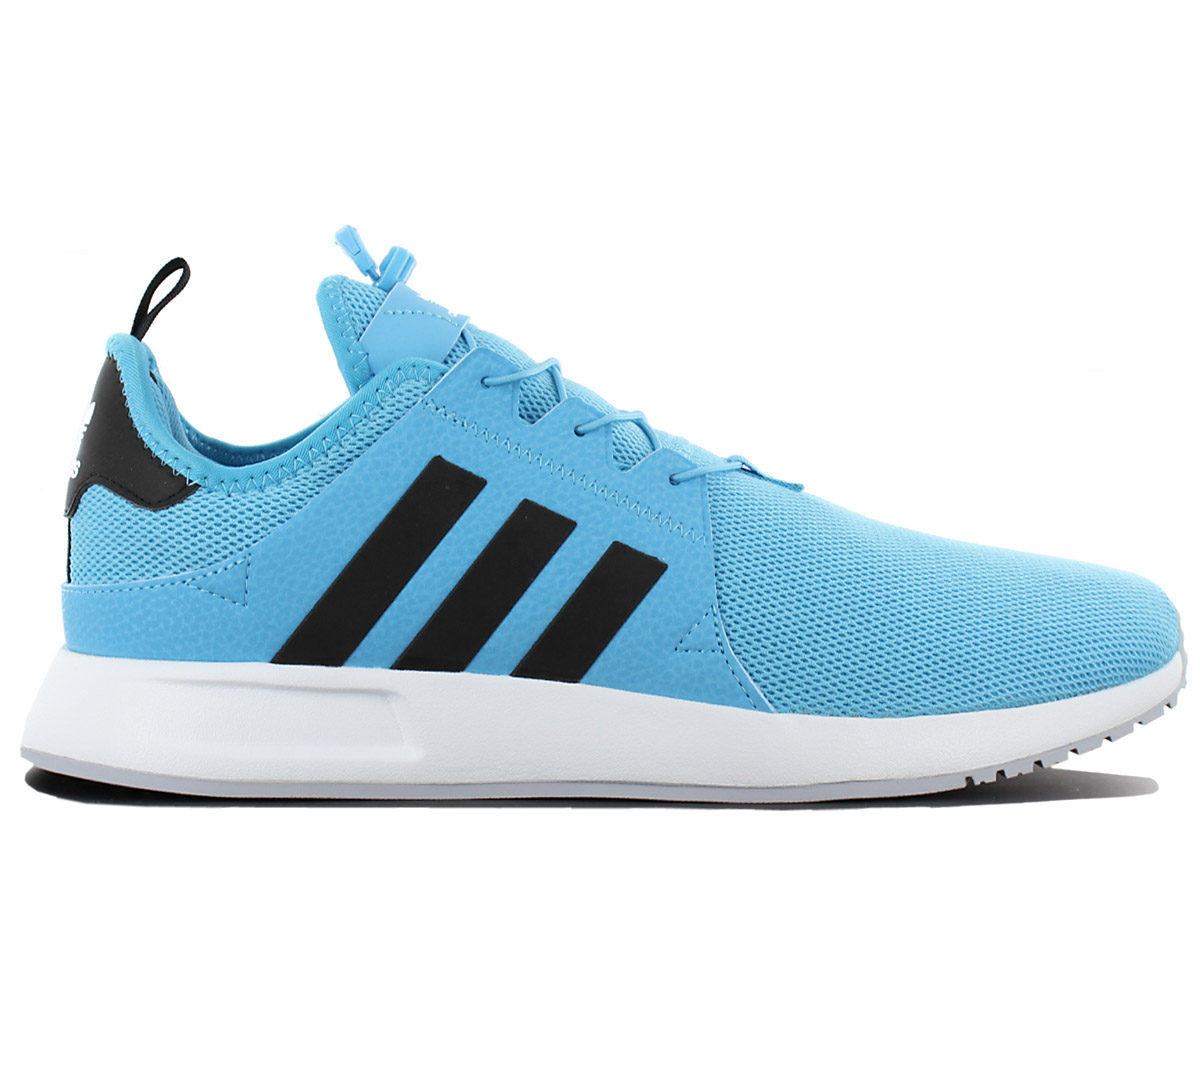 21d5e5244321 Adidas Originals x Plr Men s Sneakers Shoes Blue Casual Trainers ...